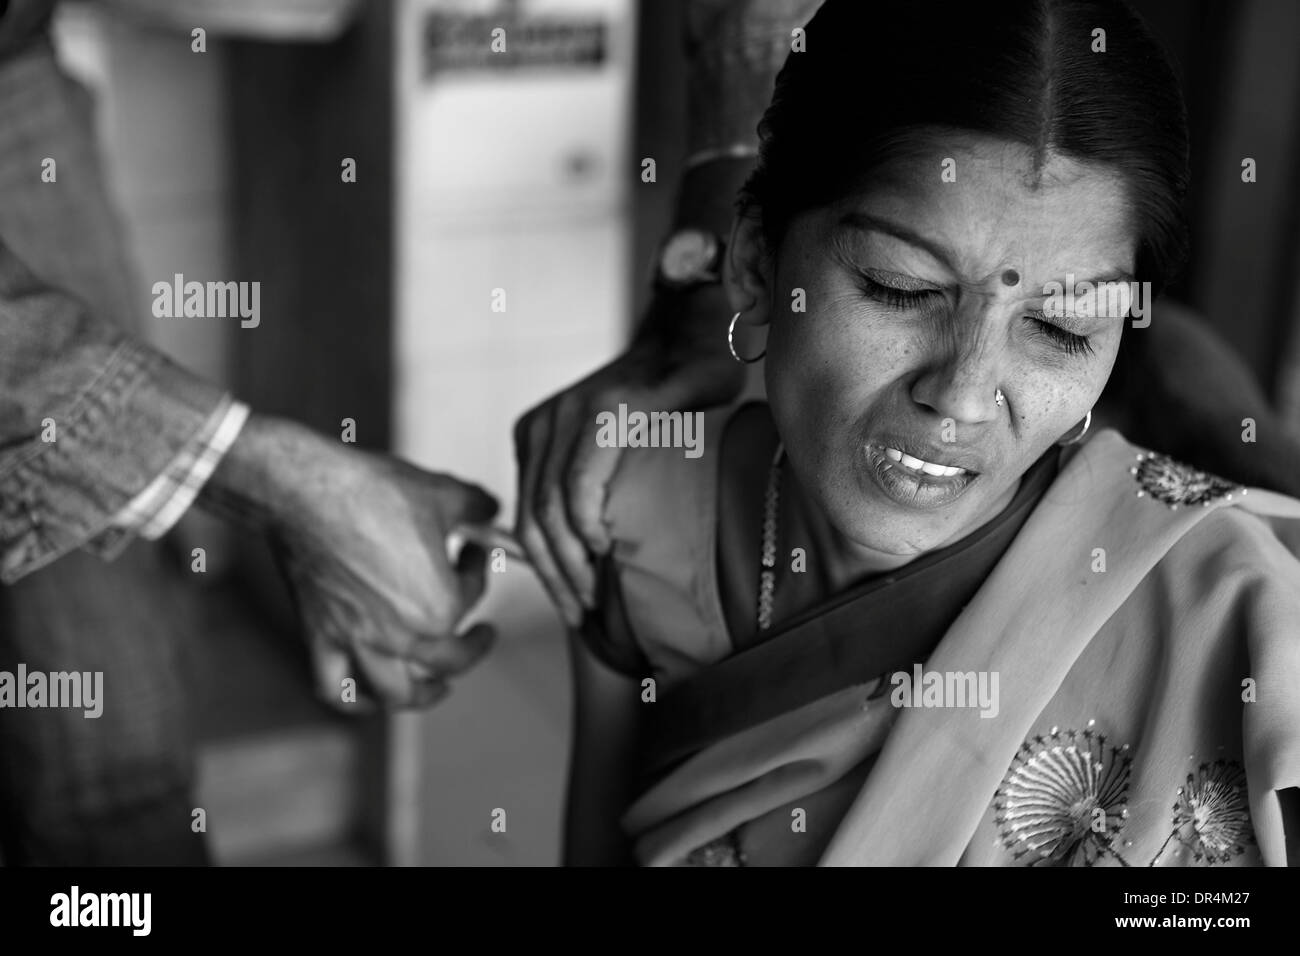 Jan 24, 2009 - DOTS centre,Ahmedabad, Gujarat, India - CHAMCHAMBEN SHARMA in pain as she is injected with the TB medicine she suffers from MDR-TB,She is enable to come to the fact that though regular with her CAT I and II regimes she has MDR-TB. (Credit Image: © Subhash Sharma/ZUMA Press) - Stock Image